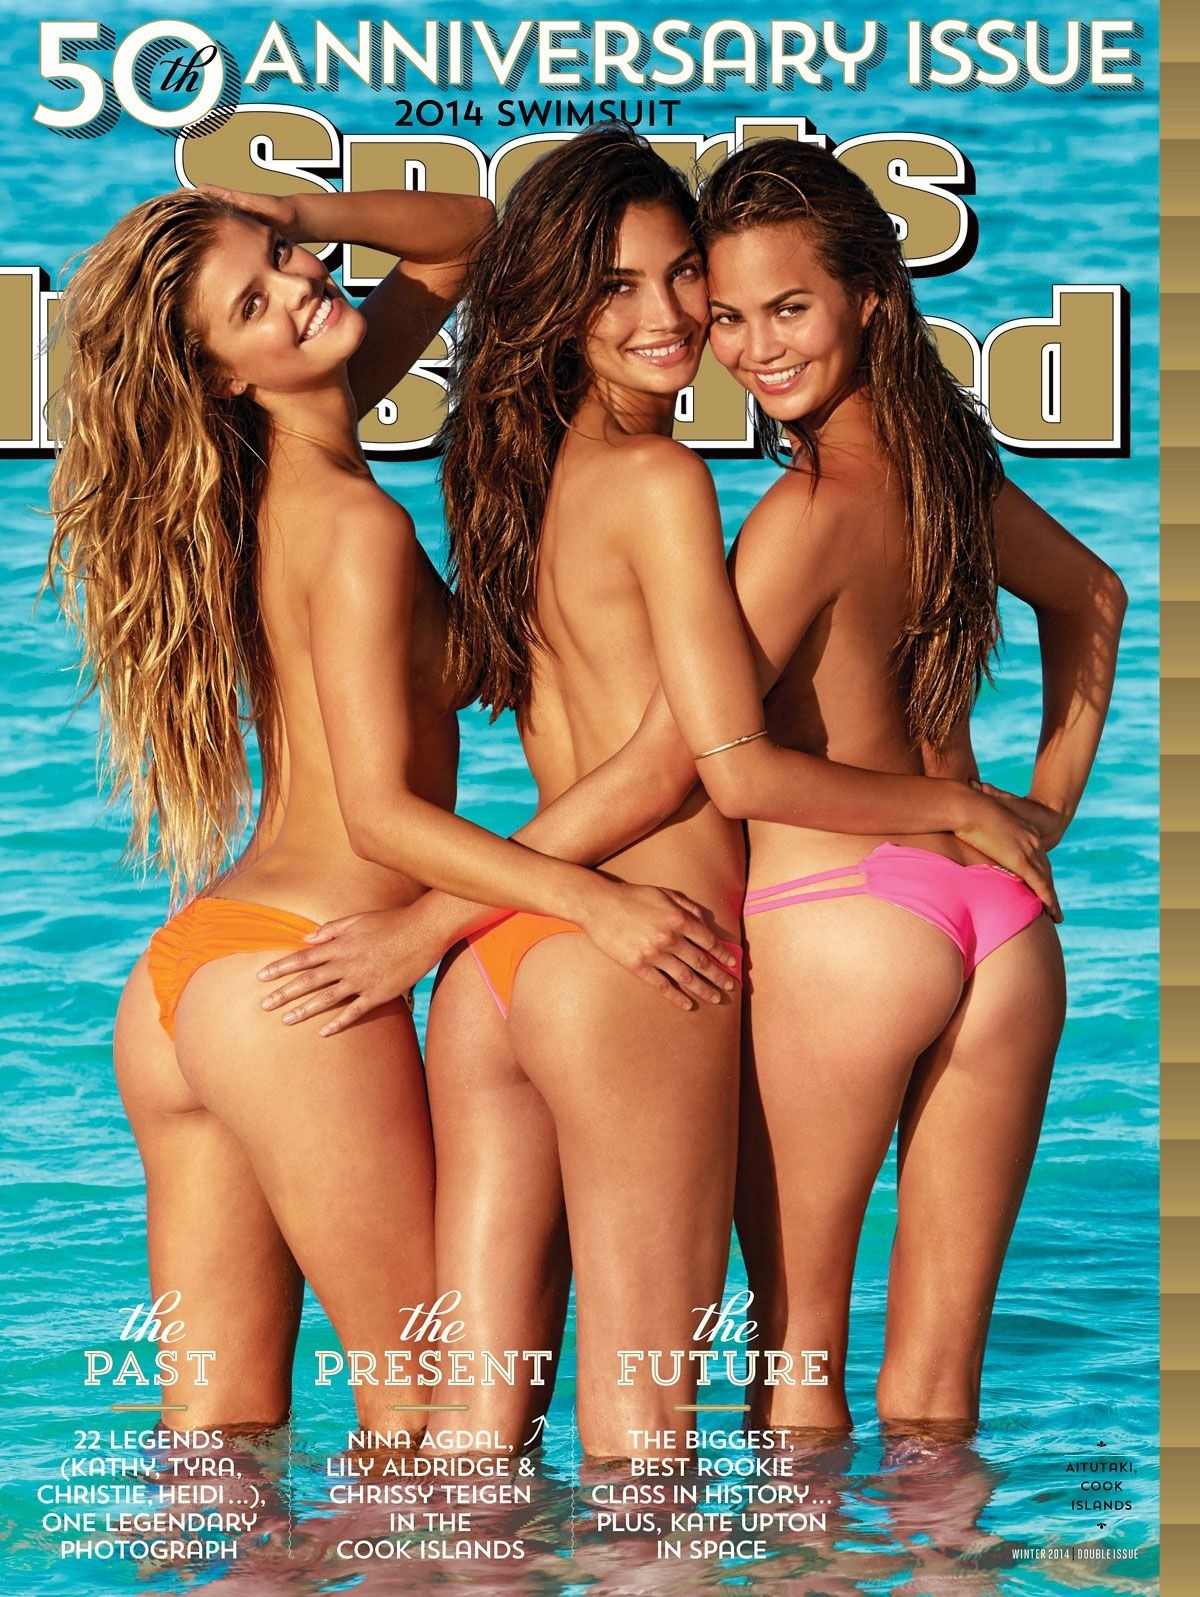 Nina Agdal Lily Aldridge And Chrissy Teigen On The Cover Of Sports Illustrated Swimsuit Cover Sports Illustrated